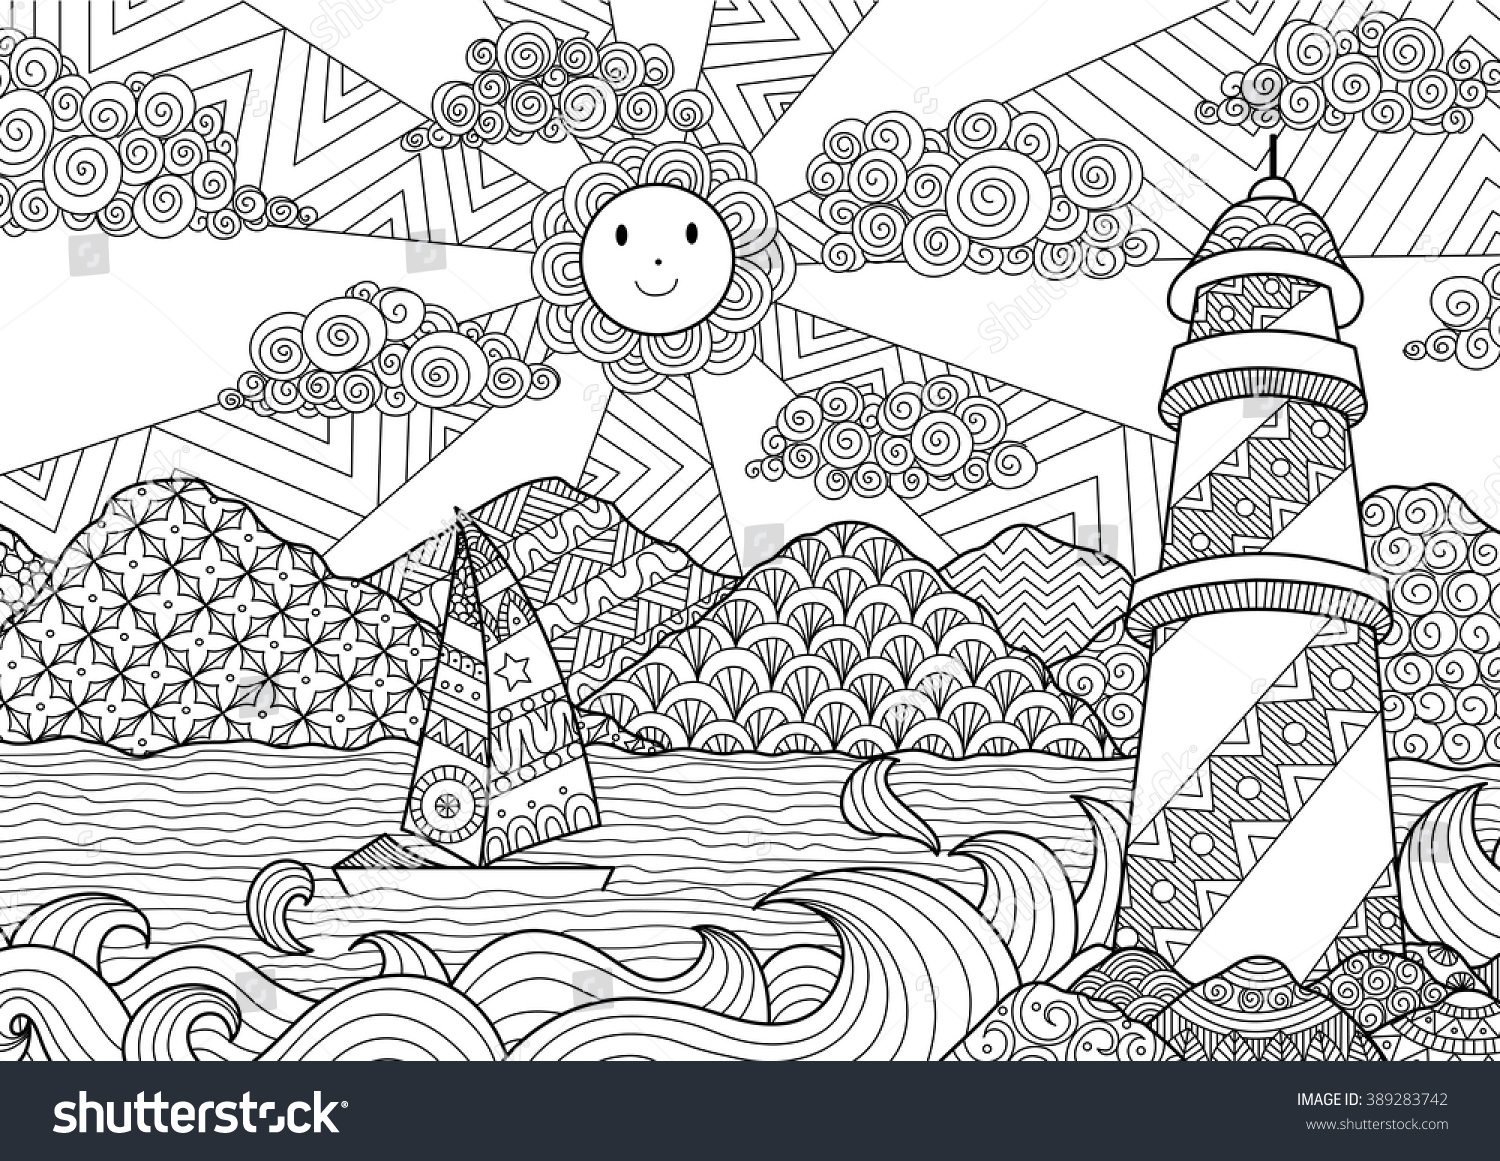 Line Art Media Design : Seascape line art design coloring book stock vector